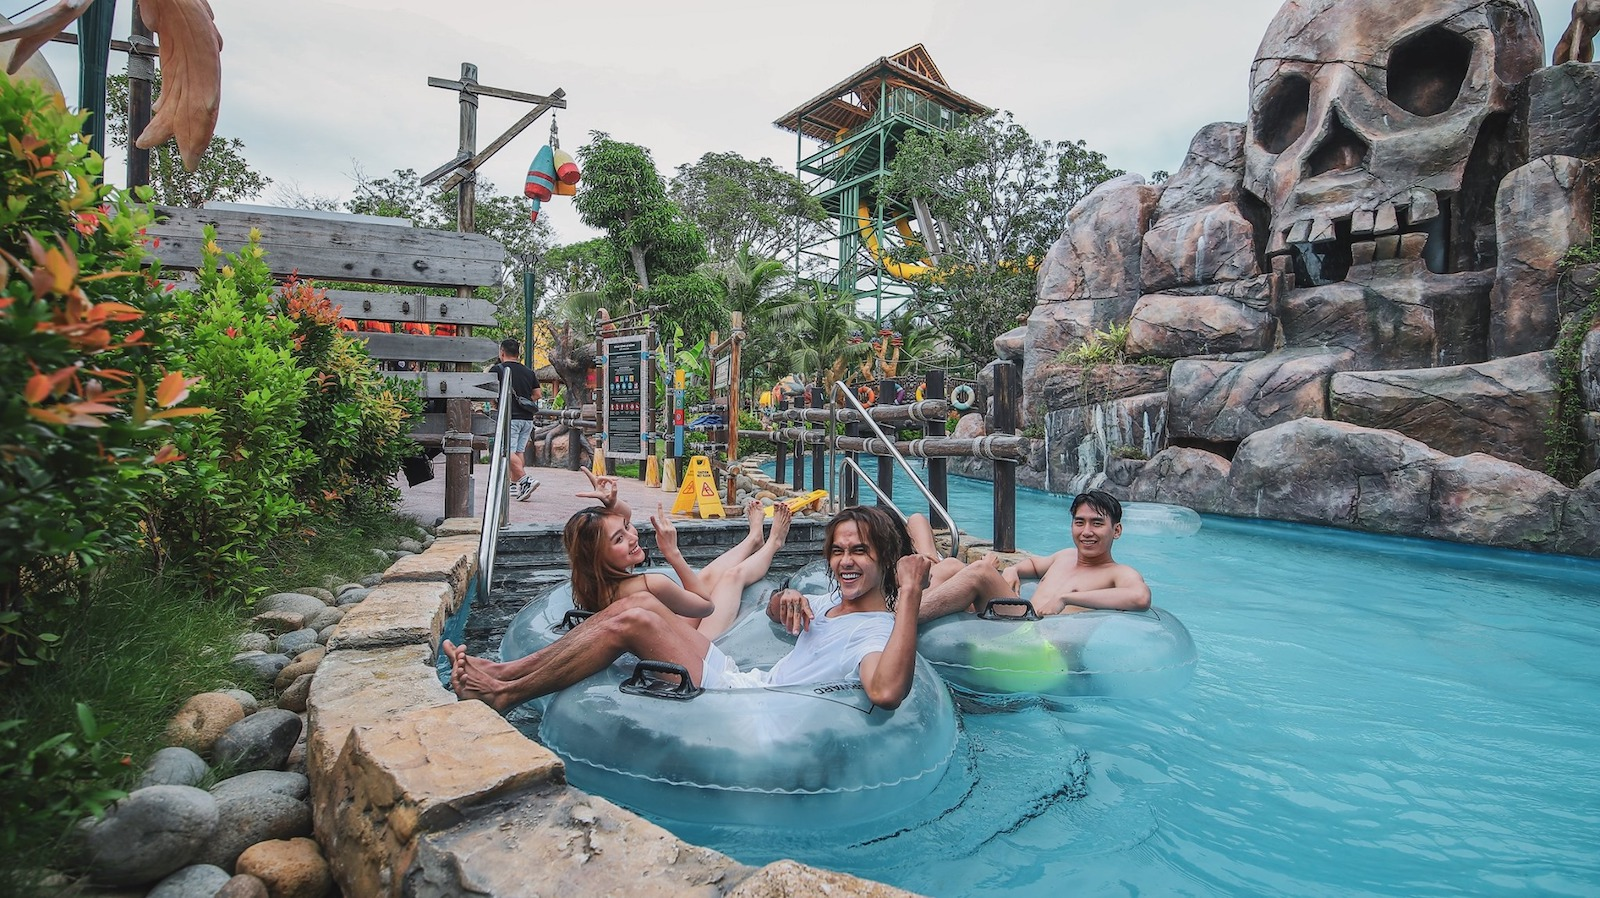 Image of the water park area at Sun World Hon Thom Nature Park in Vietnam